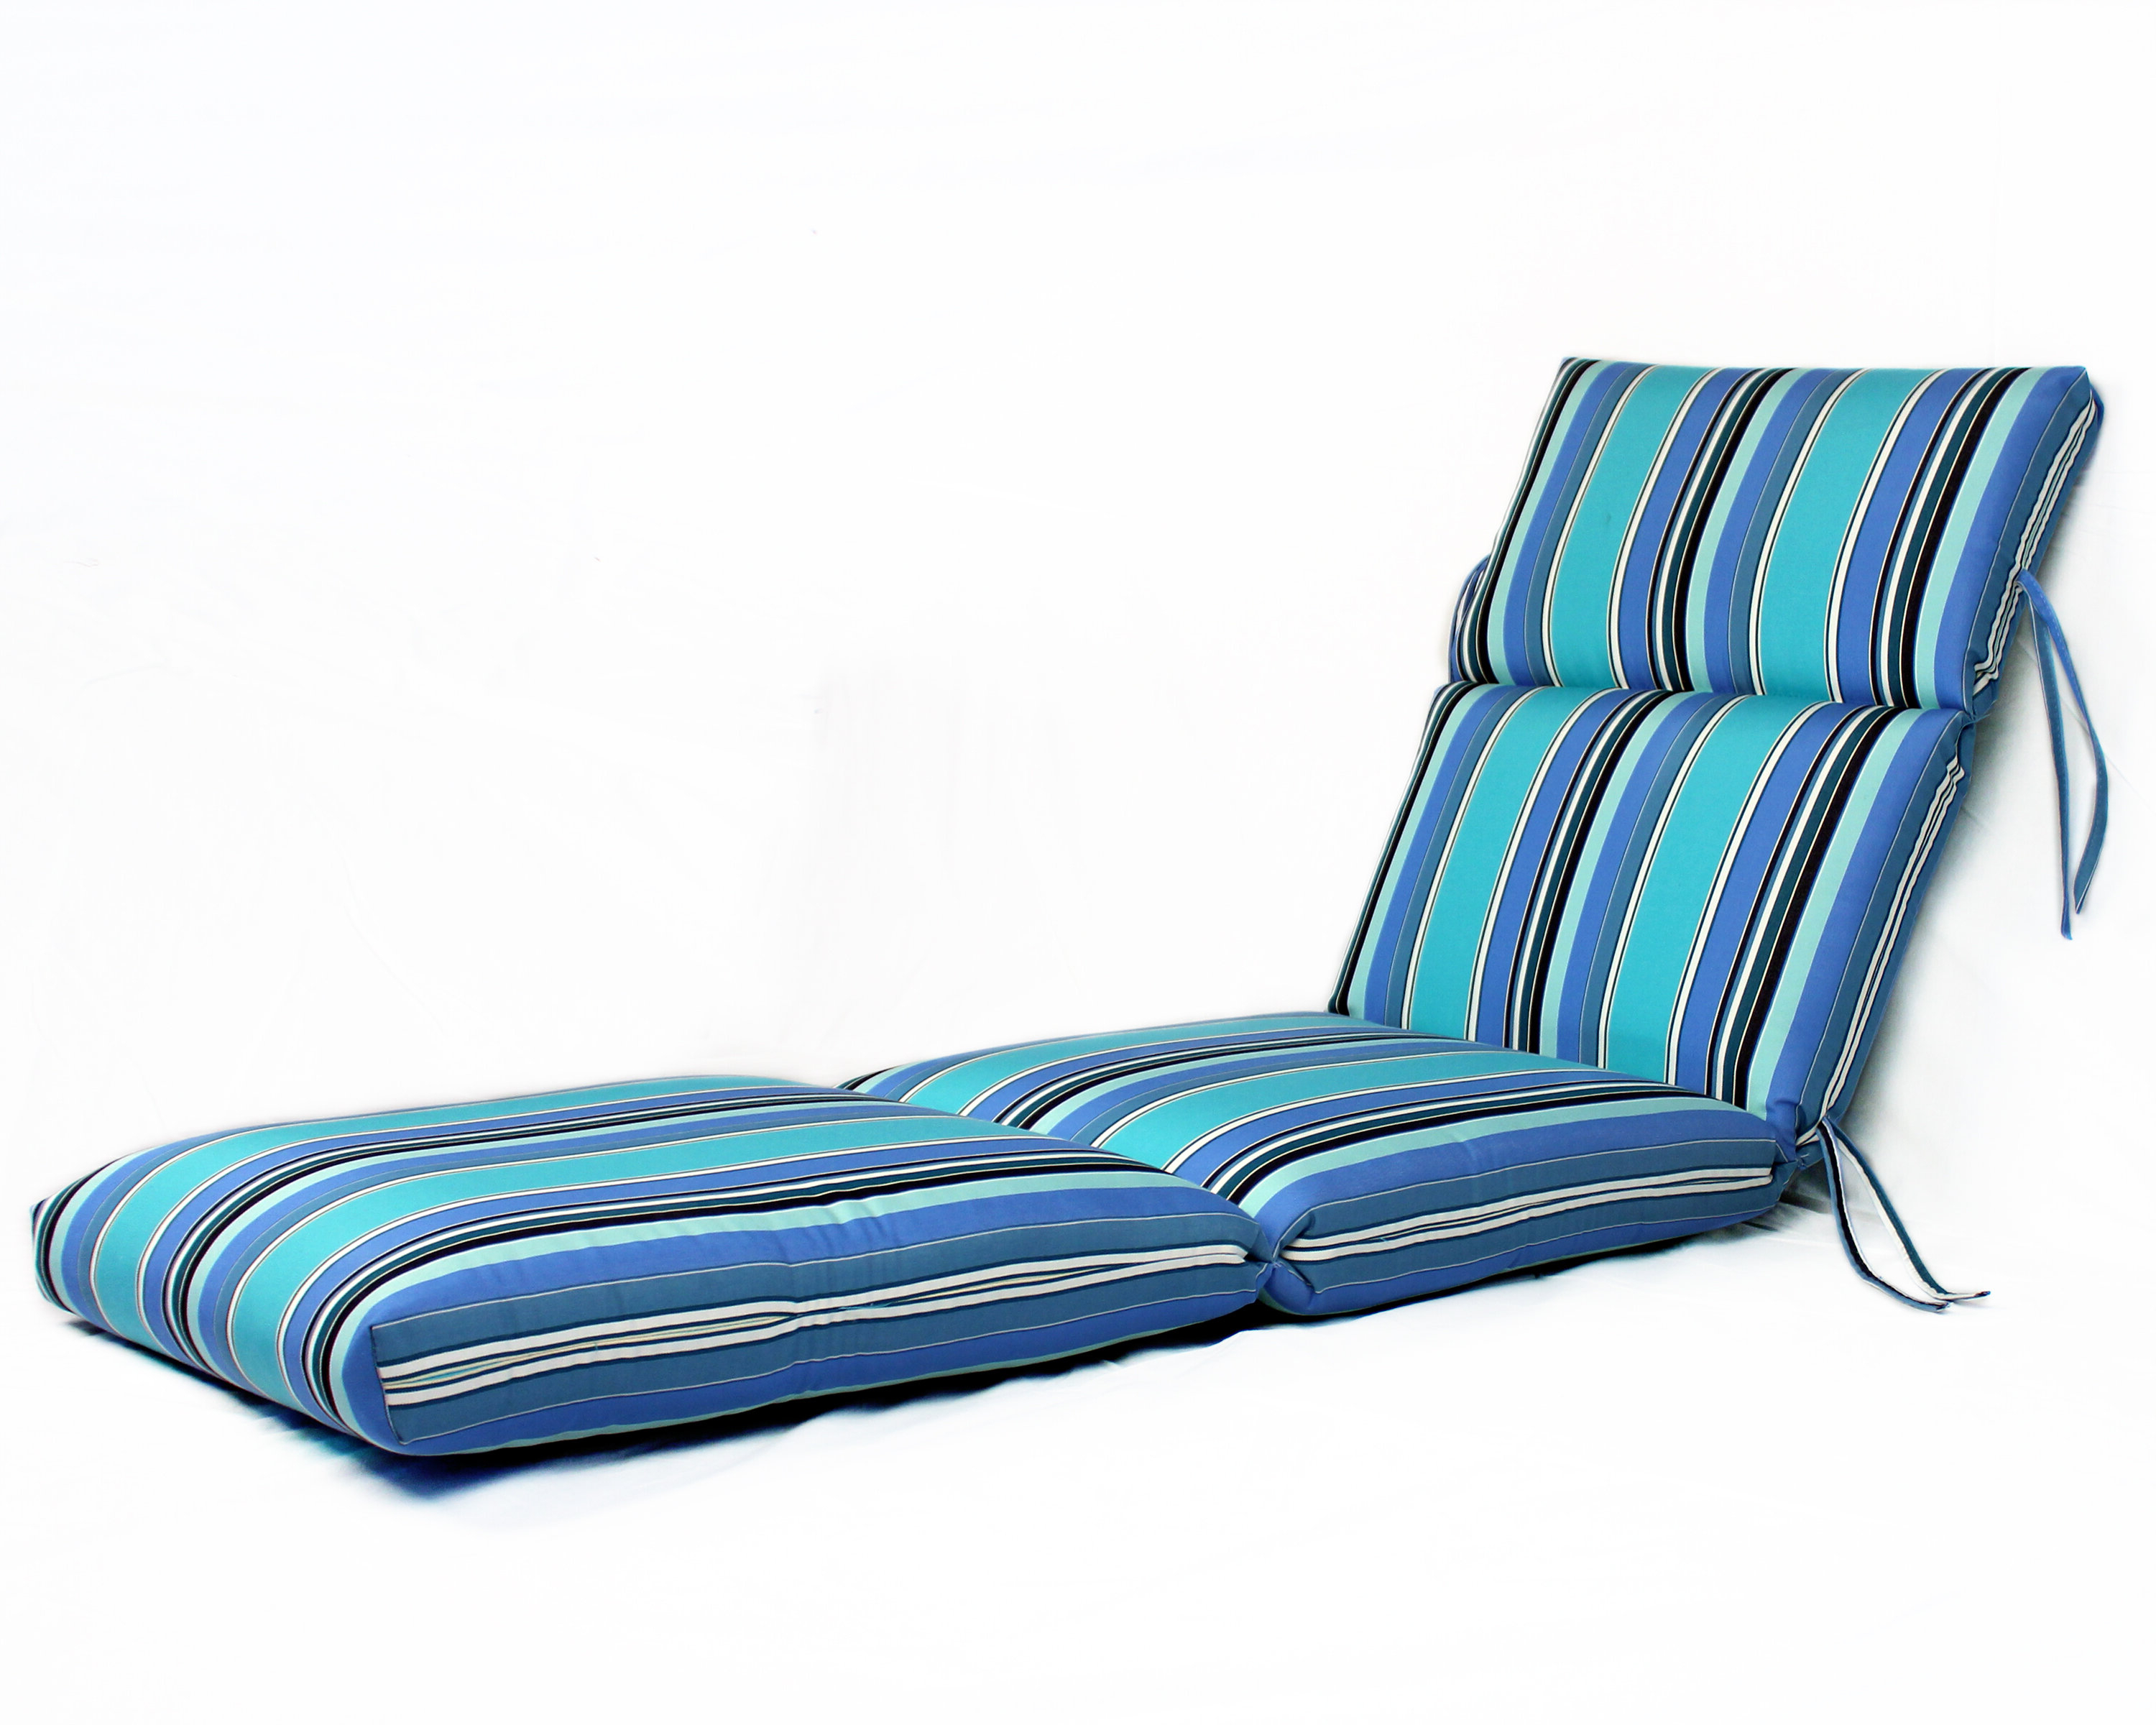 Most Recently Released Dolce Oasis Indoor/outdoor Sunbrella Chaise Lounge Cushion Pertaining To Indoor Outdoor Textured Bright Chaise Lounges With Sunbrella Fabric (Gallery 12 of 25)